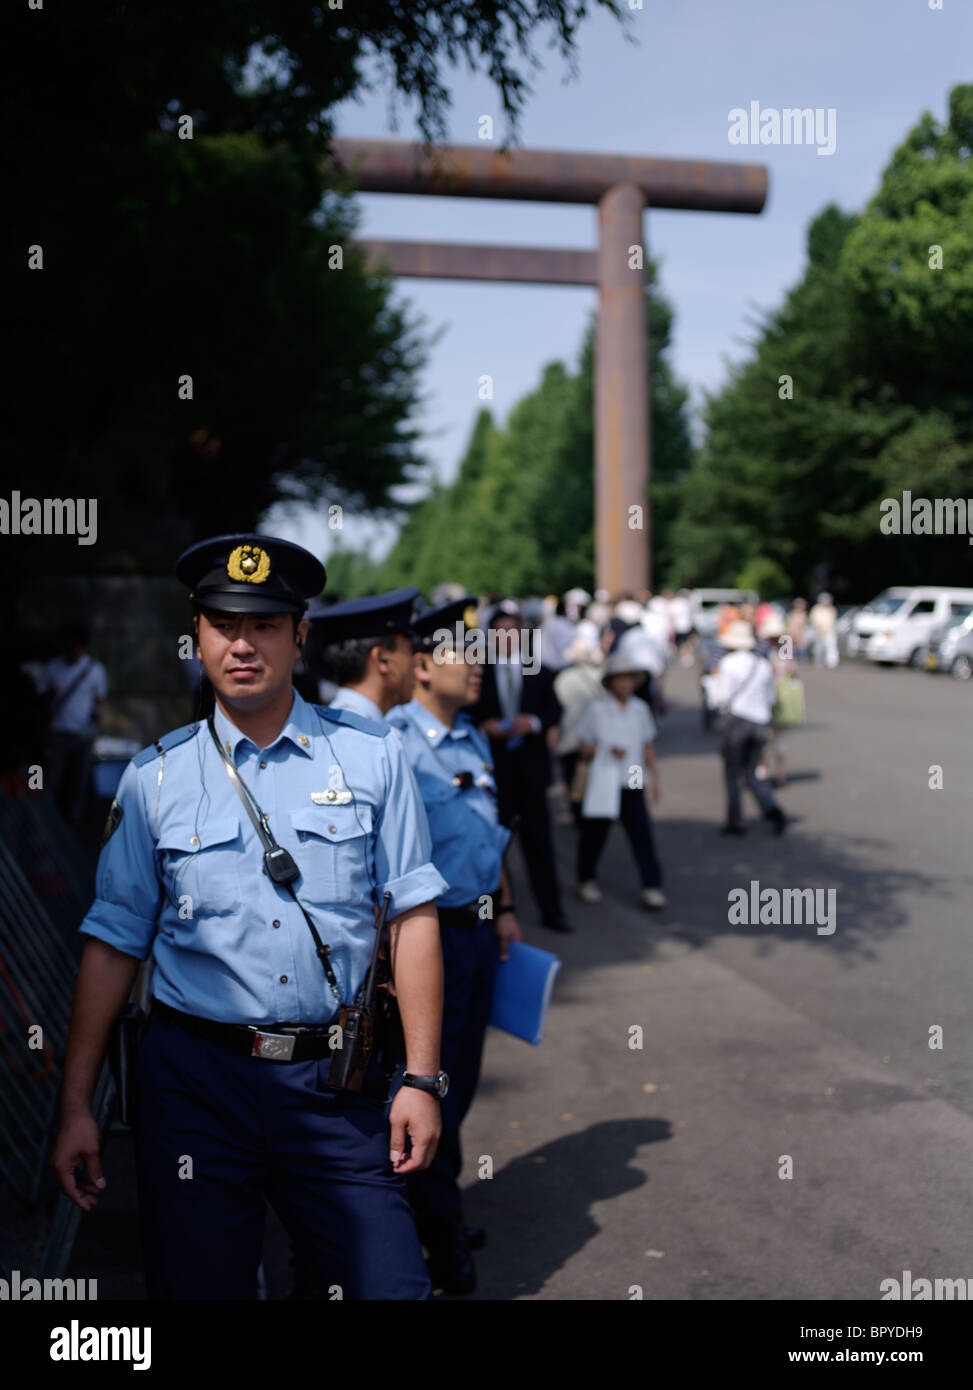 Anniversary of the August 15th surrender of Japanese forces at the end of WWII is held each year at Yasukuni Shrine. - Stock Image